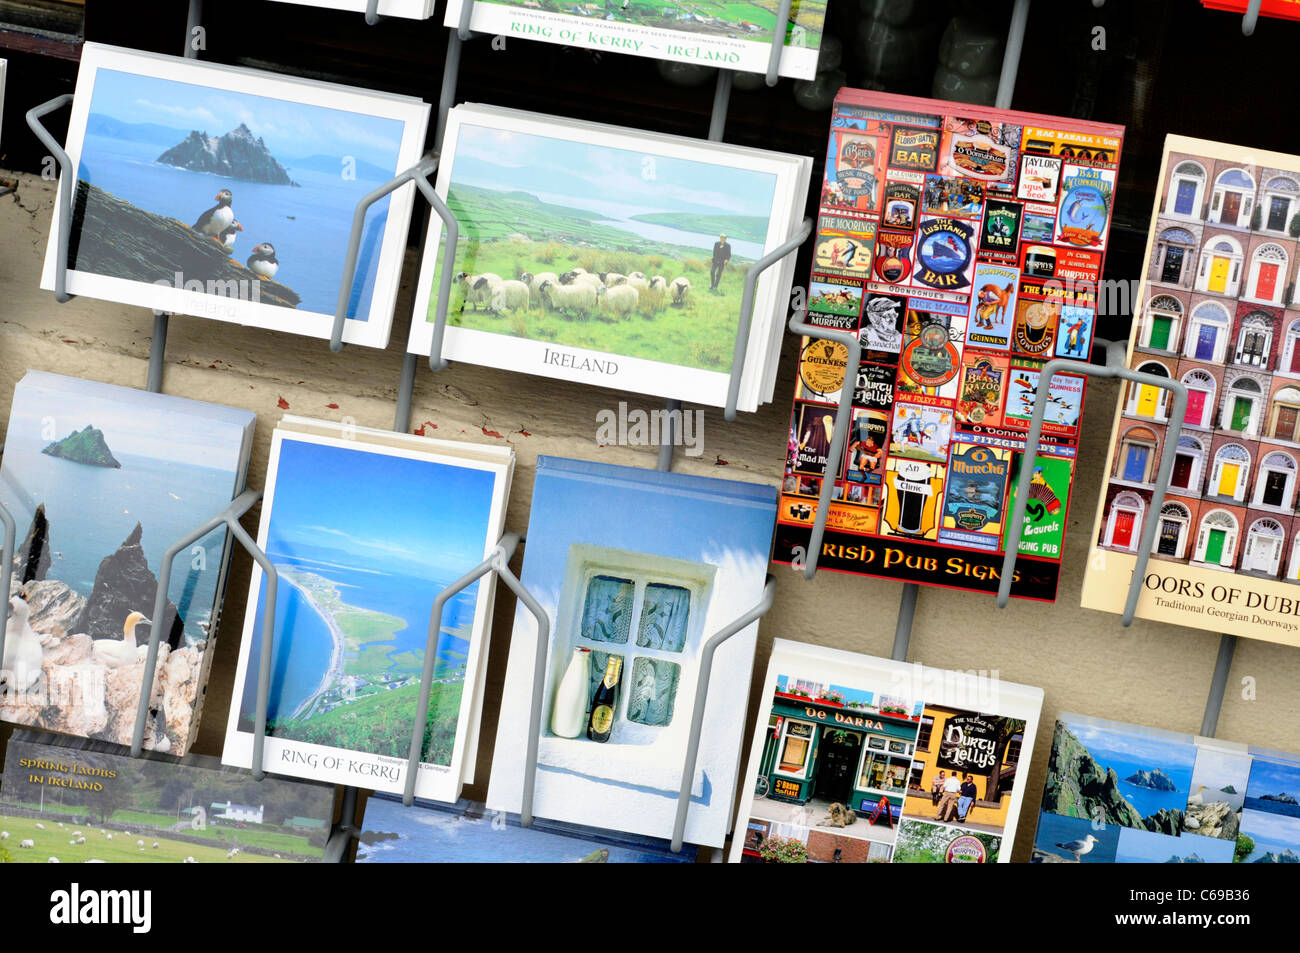 Postcards for sale outside a shop in Sneem, County Kerry, Ireland - Stock Image